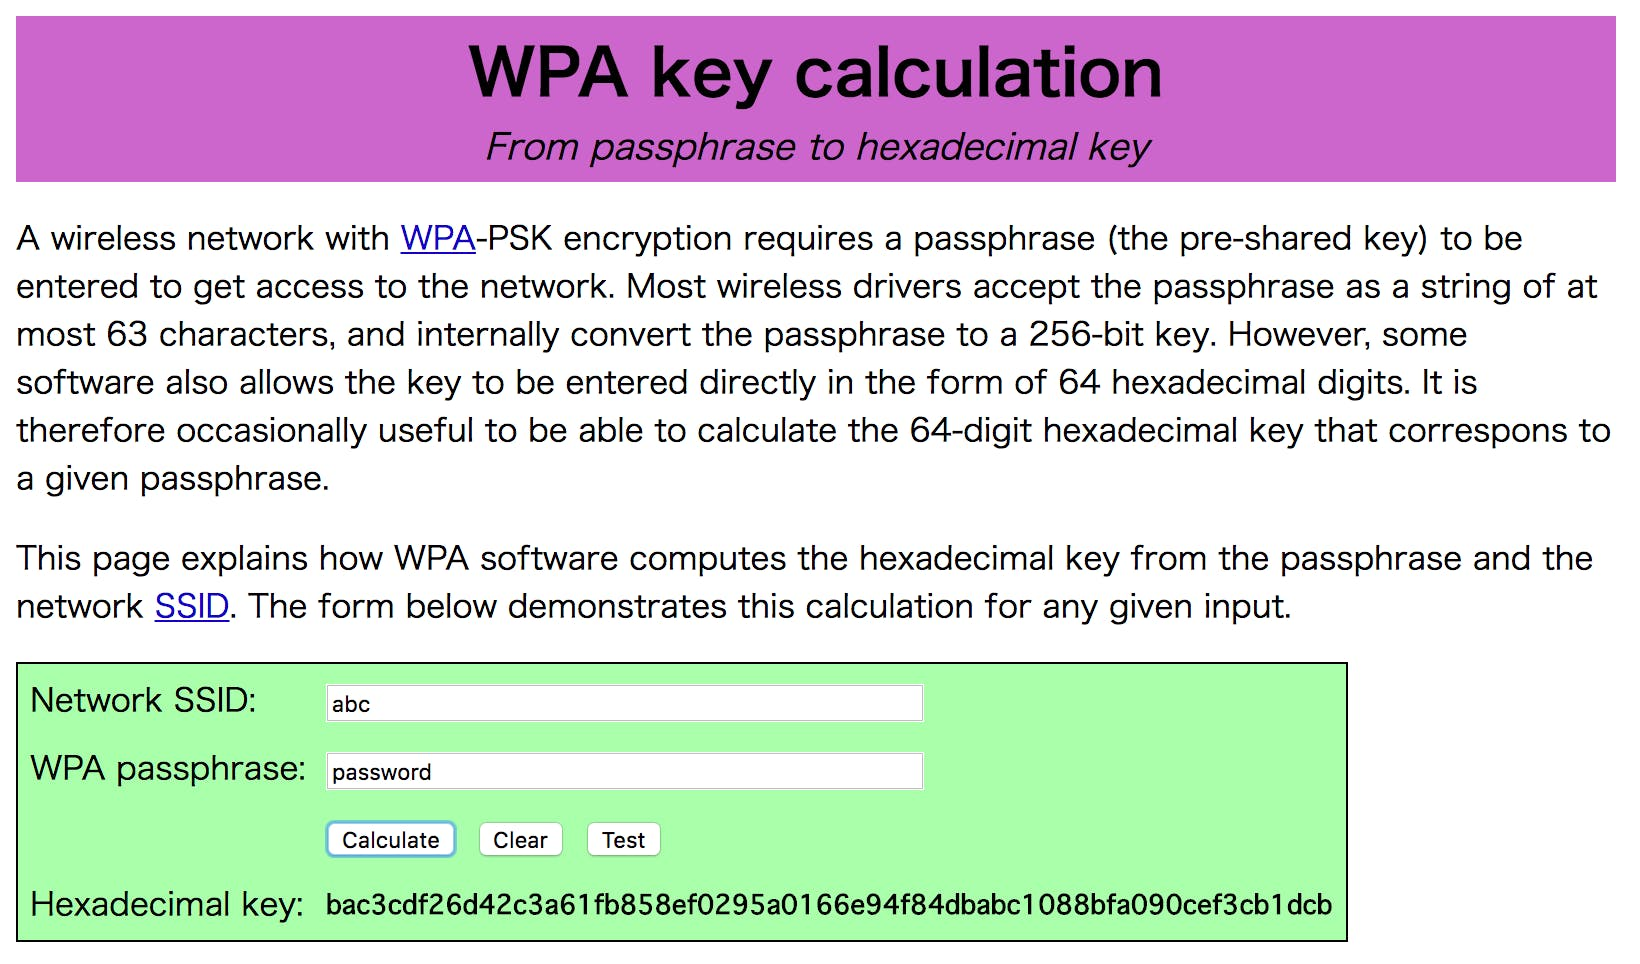 WPA key calculation